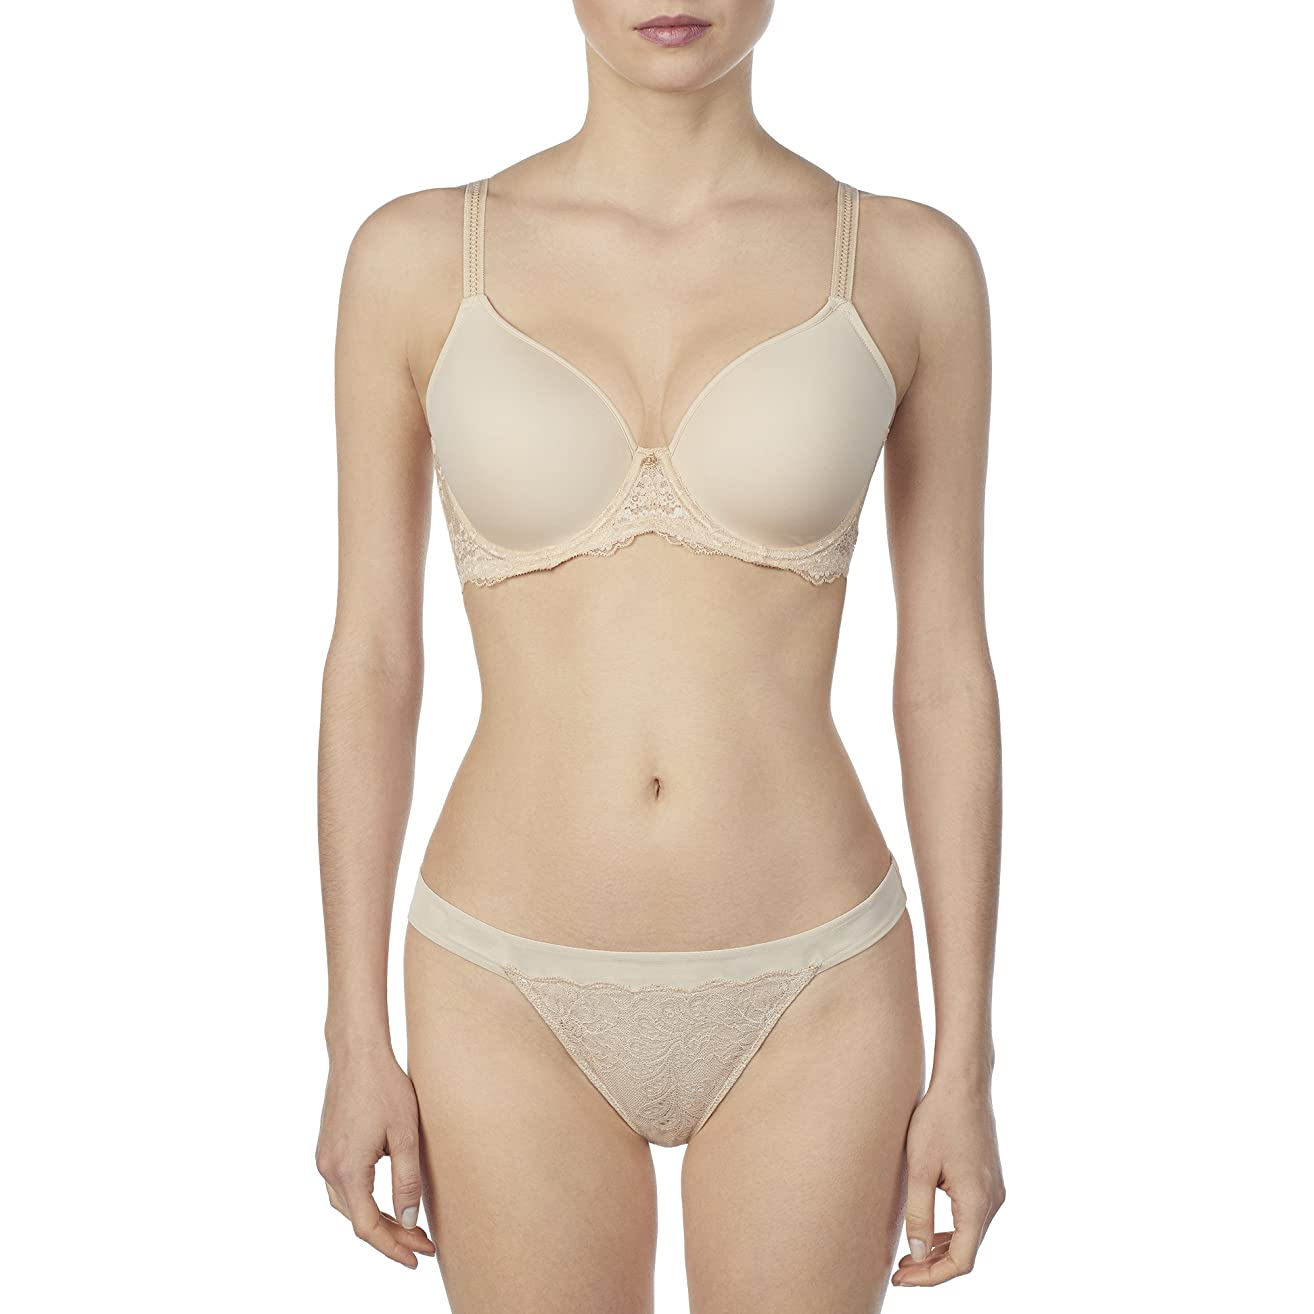 Le Mystere Women's Transformative Tisha T-Shirt Bra, Transformative Lift and Support with Hybrid Memory Foam Cups